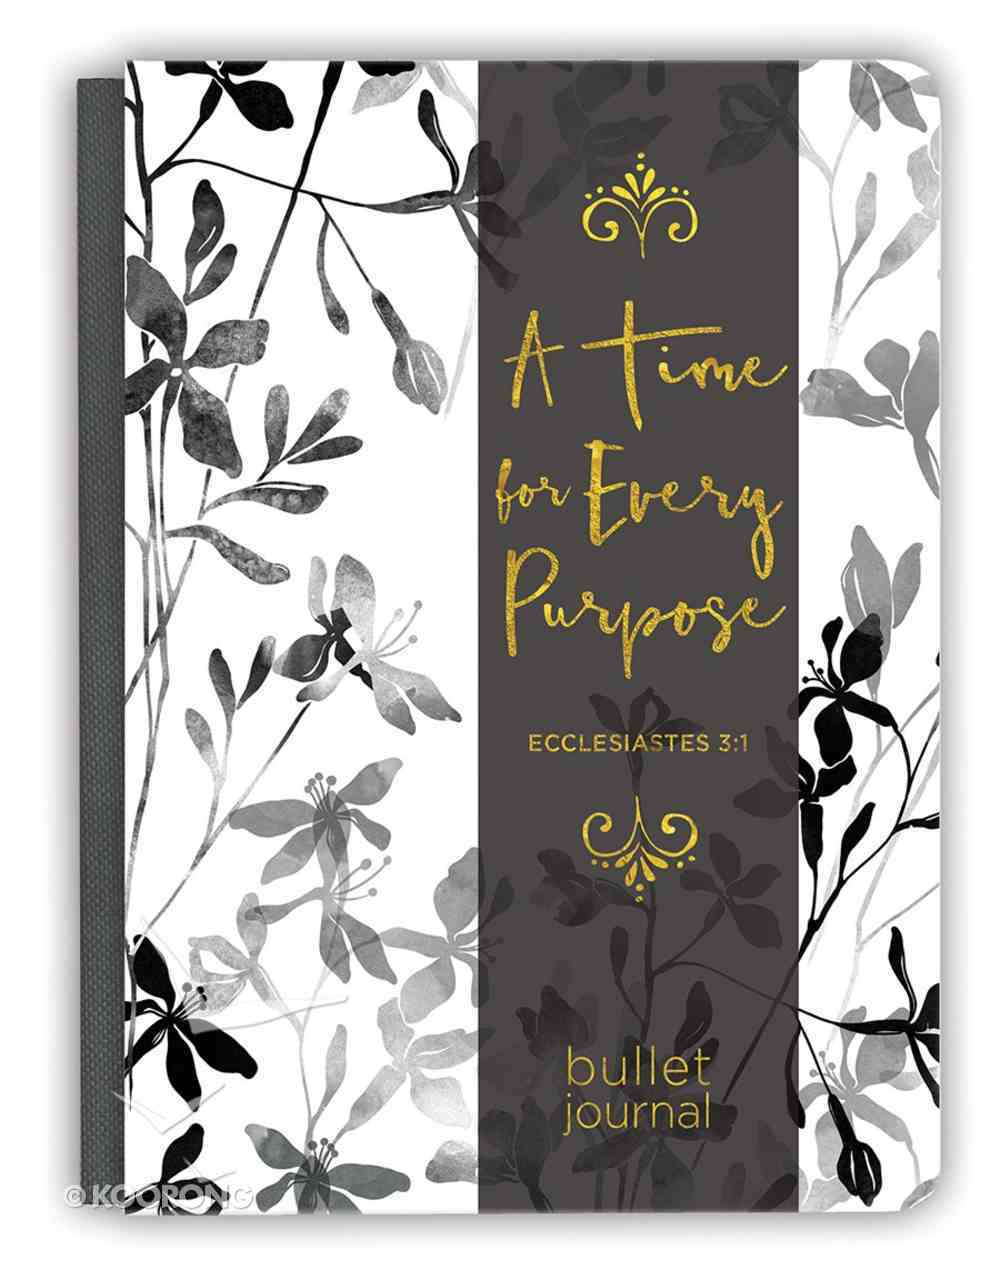 Bullet Journal: A Time For Every Purpose (Eccl 3:1) Hardback